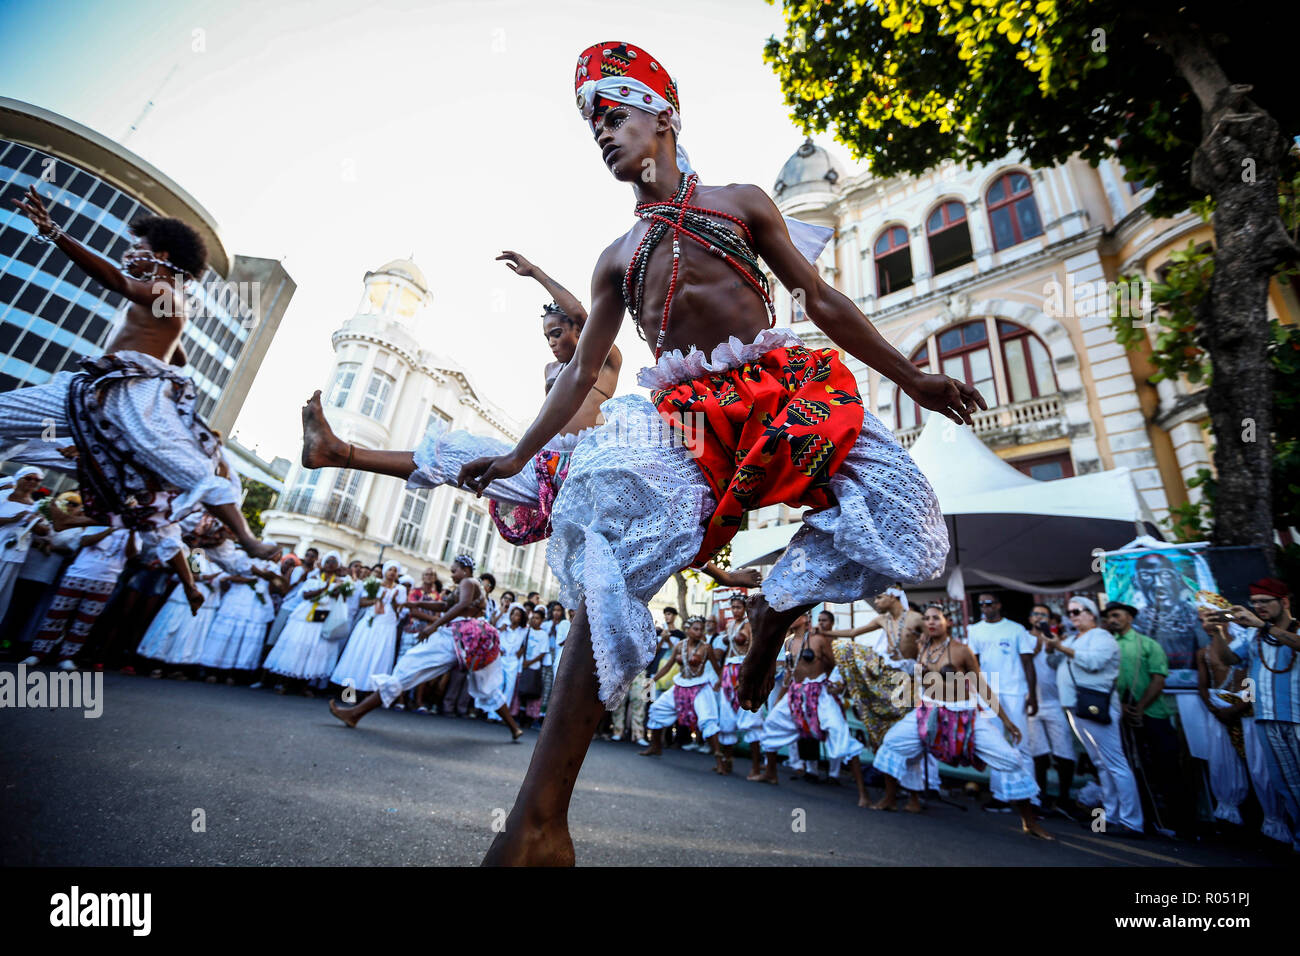 Recife, Brazil. 1st Nov 2018. 12 Walk of the Terreiros - Recife - 12 Walk of the Terreiros in Marco Zero, in the neighborhoods of the Old Recife, that marks the opening of the Month of the Black Consciousness, this Thursday (01) Photo: Paulo Paiva / AGIF Credit: AGIF/Alamy Live News - Stock Image